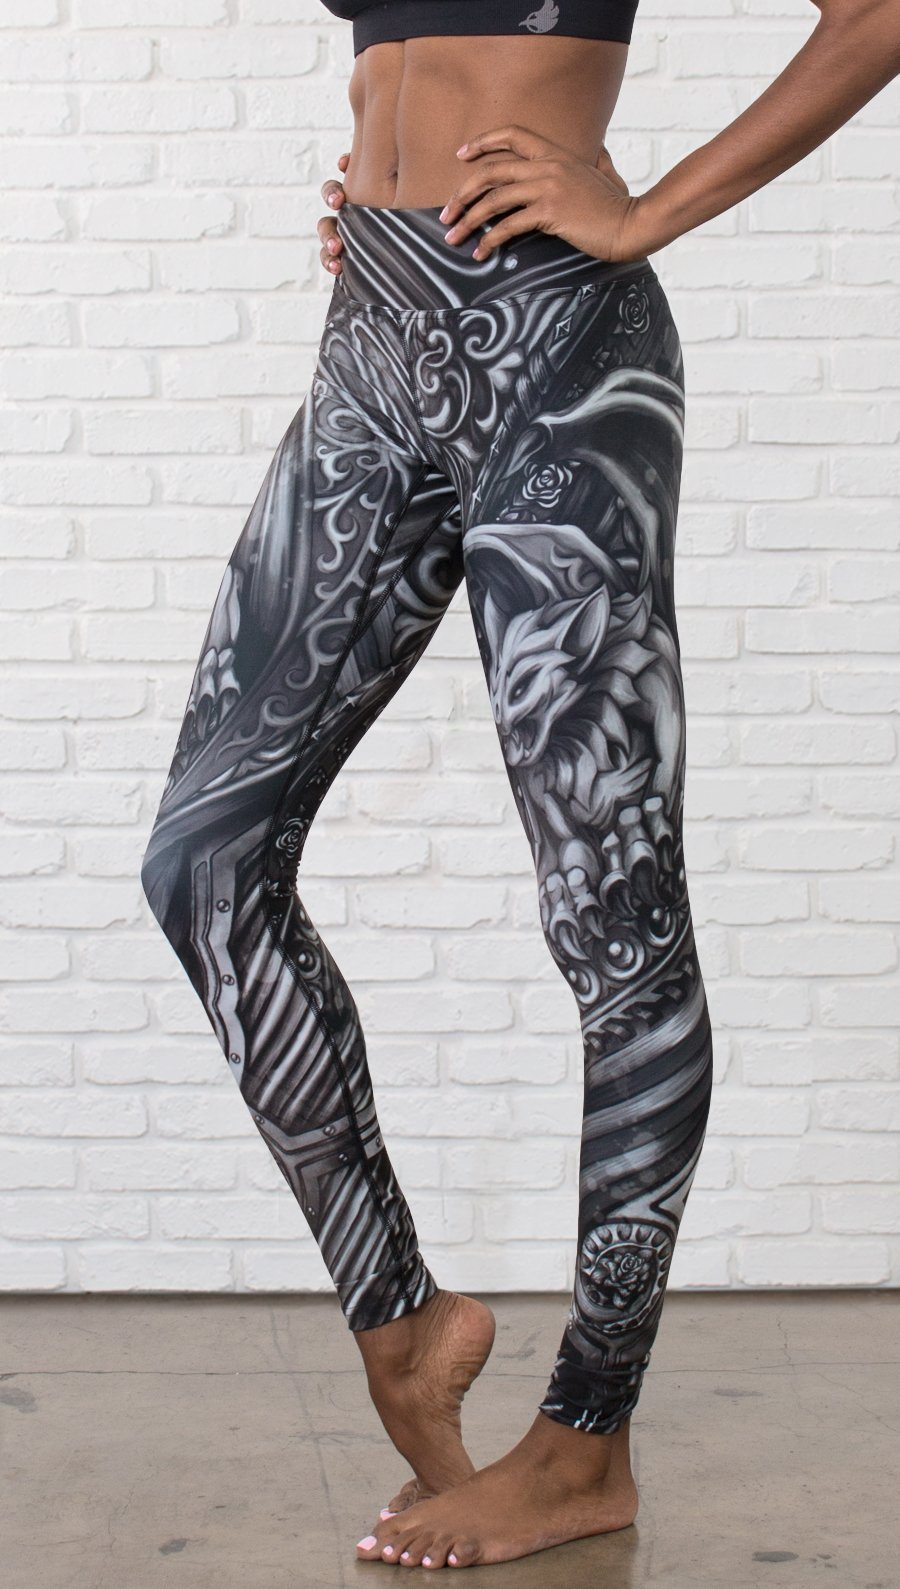 closeup front view of model wearing galaxy themed printed full length leggings